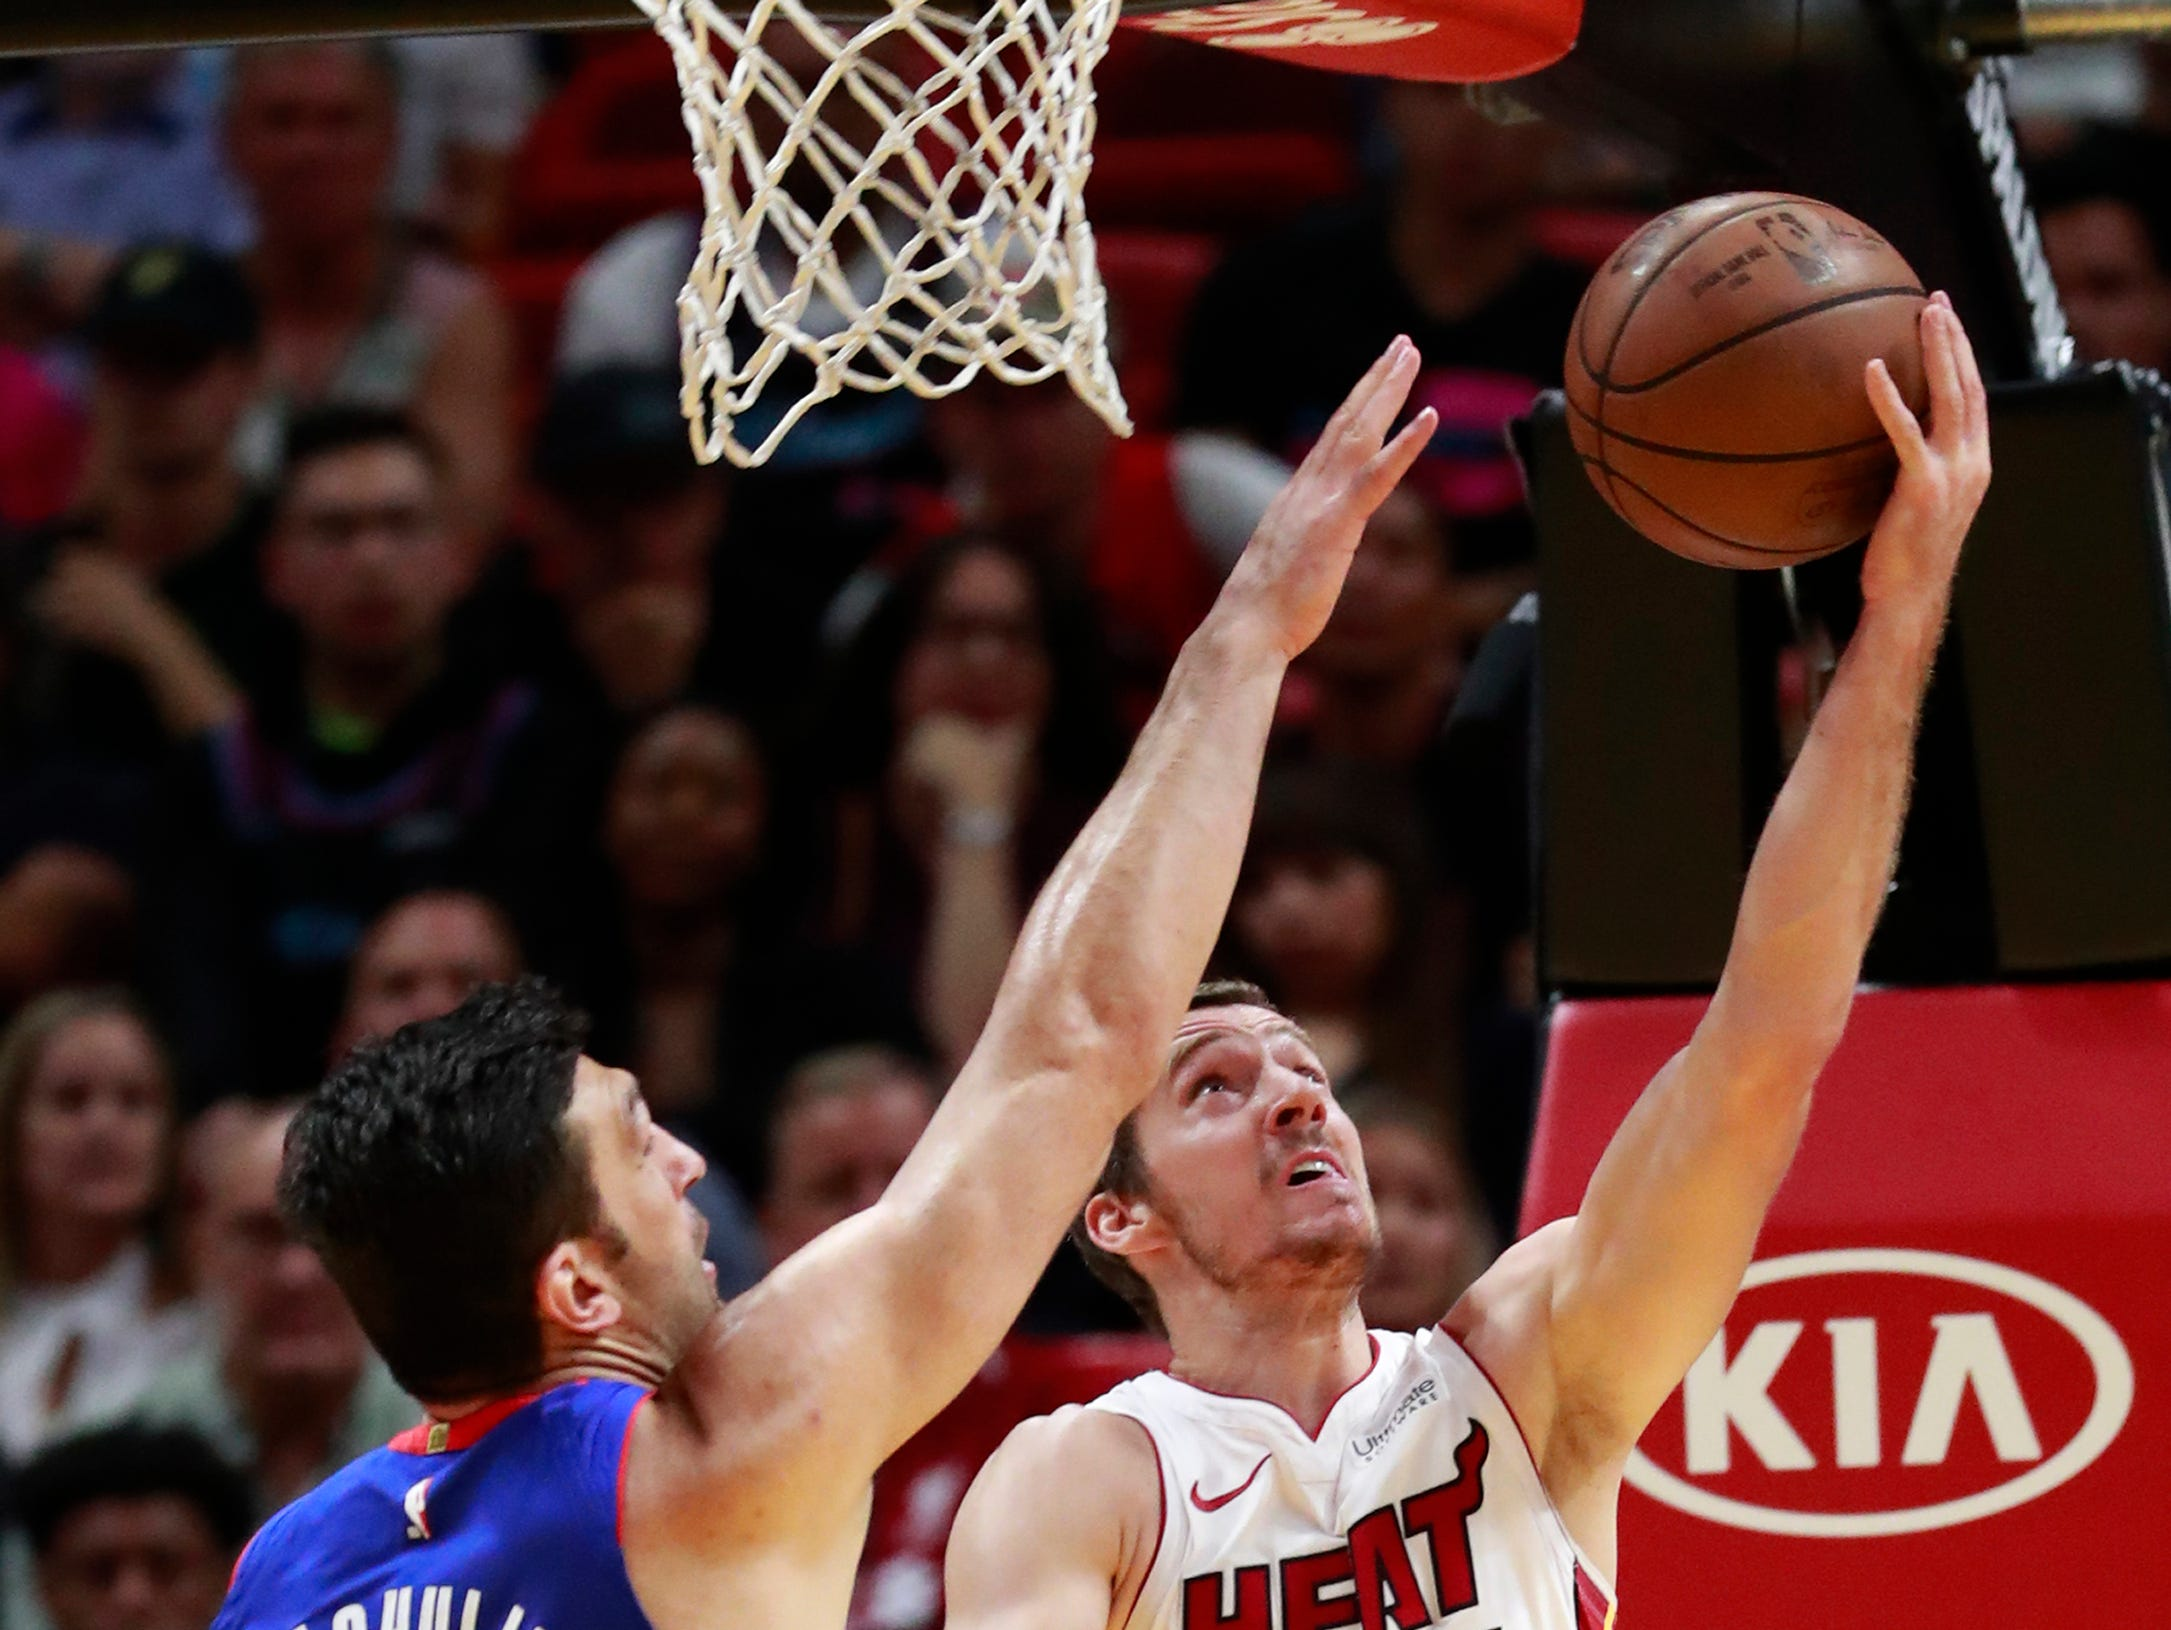 Miami Heat guard Goran Dragic (7) shoots against Detroit Pistons center Zaza Pachulia (27) during the first half.